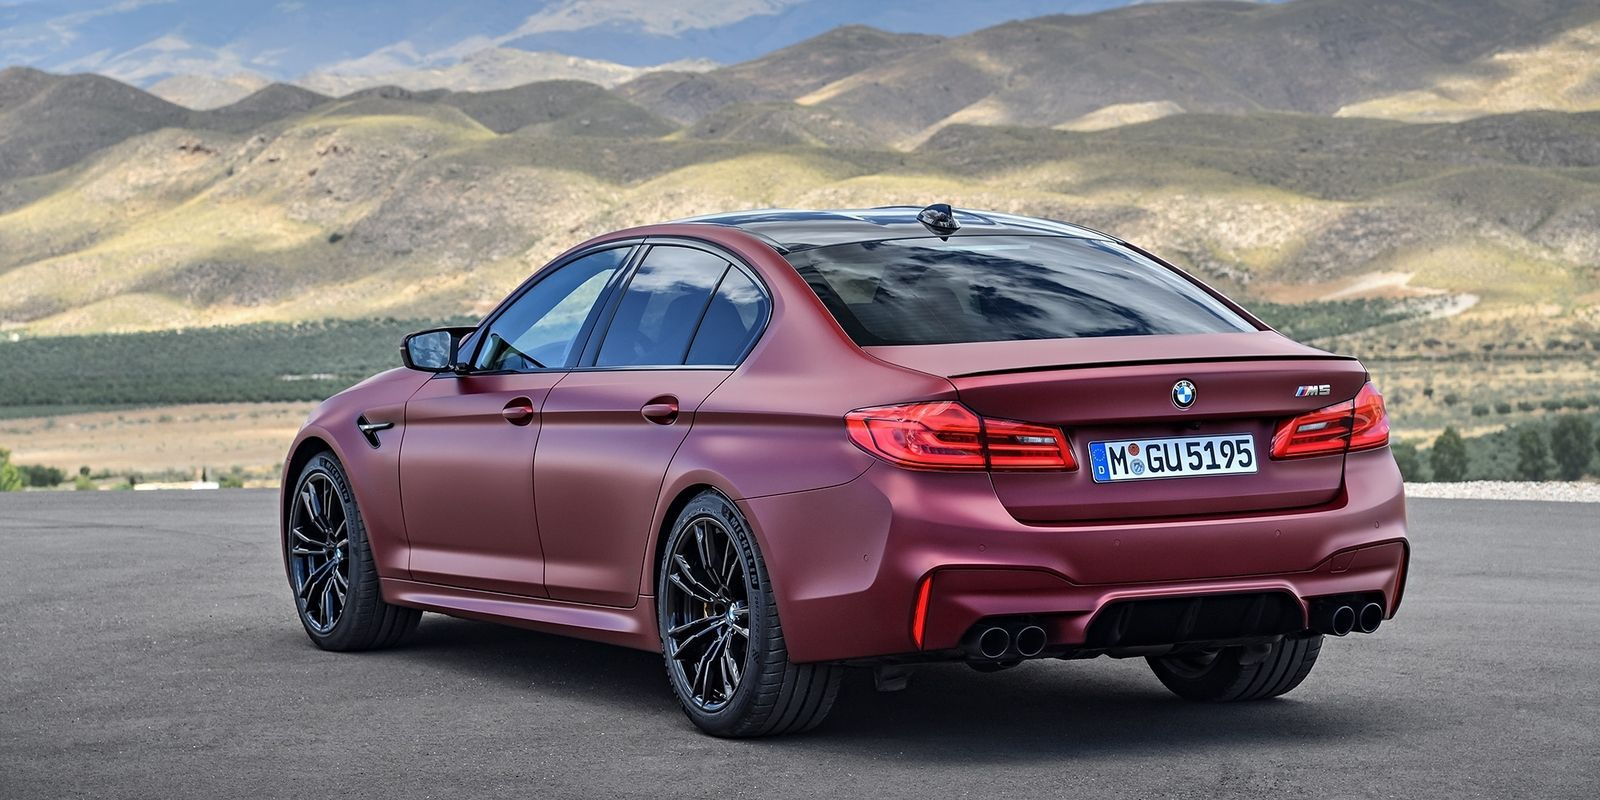 2018 Bmw M5 600 Hp And All Wheel Drive For 102 600 Bmw M5 New Bmw Bmw